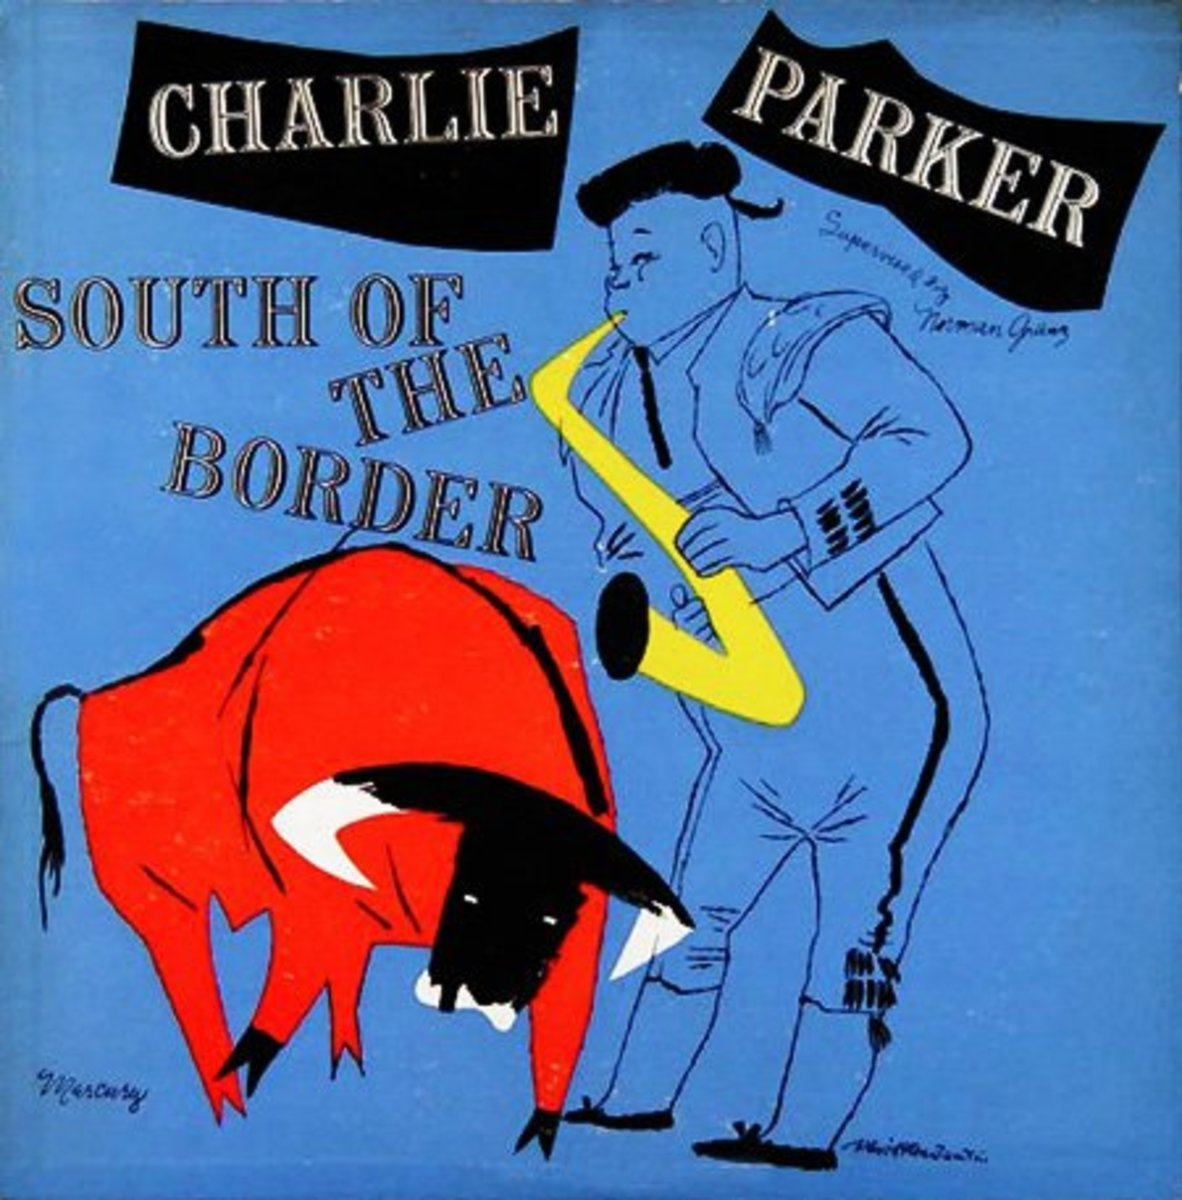 "Charlie Parker ""Charlie Parker Plays South of the Border"" Mercury 513 10"" LP Vinyl Record (1953) Album Cover Art by David Stone Martin"